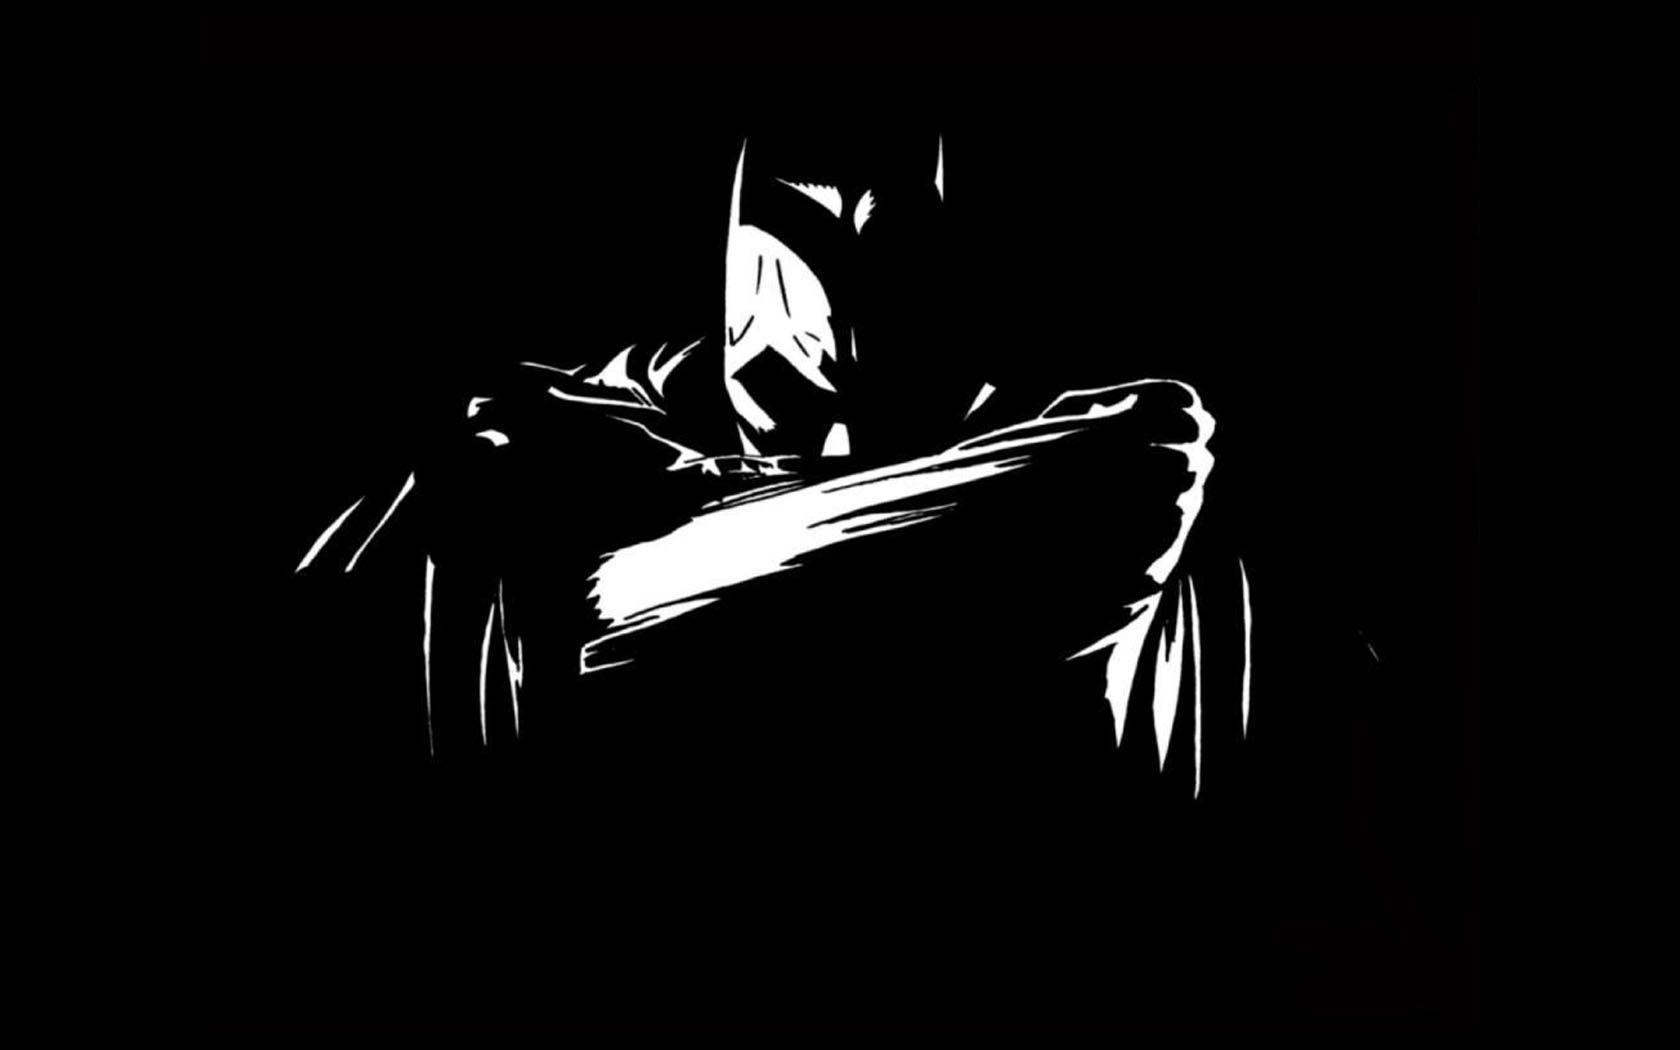 Batman Black And White Backgrounds, Compatible - PC, Mobile, Gadgets| 1680x1050 px